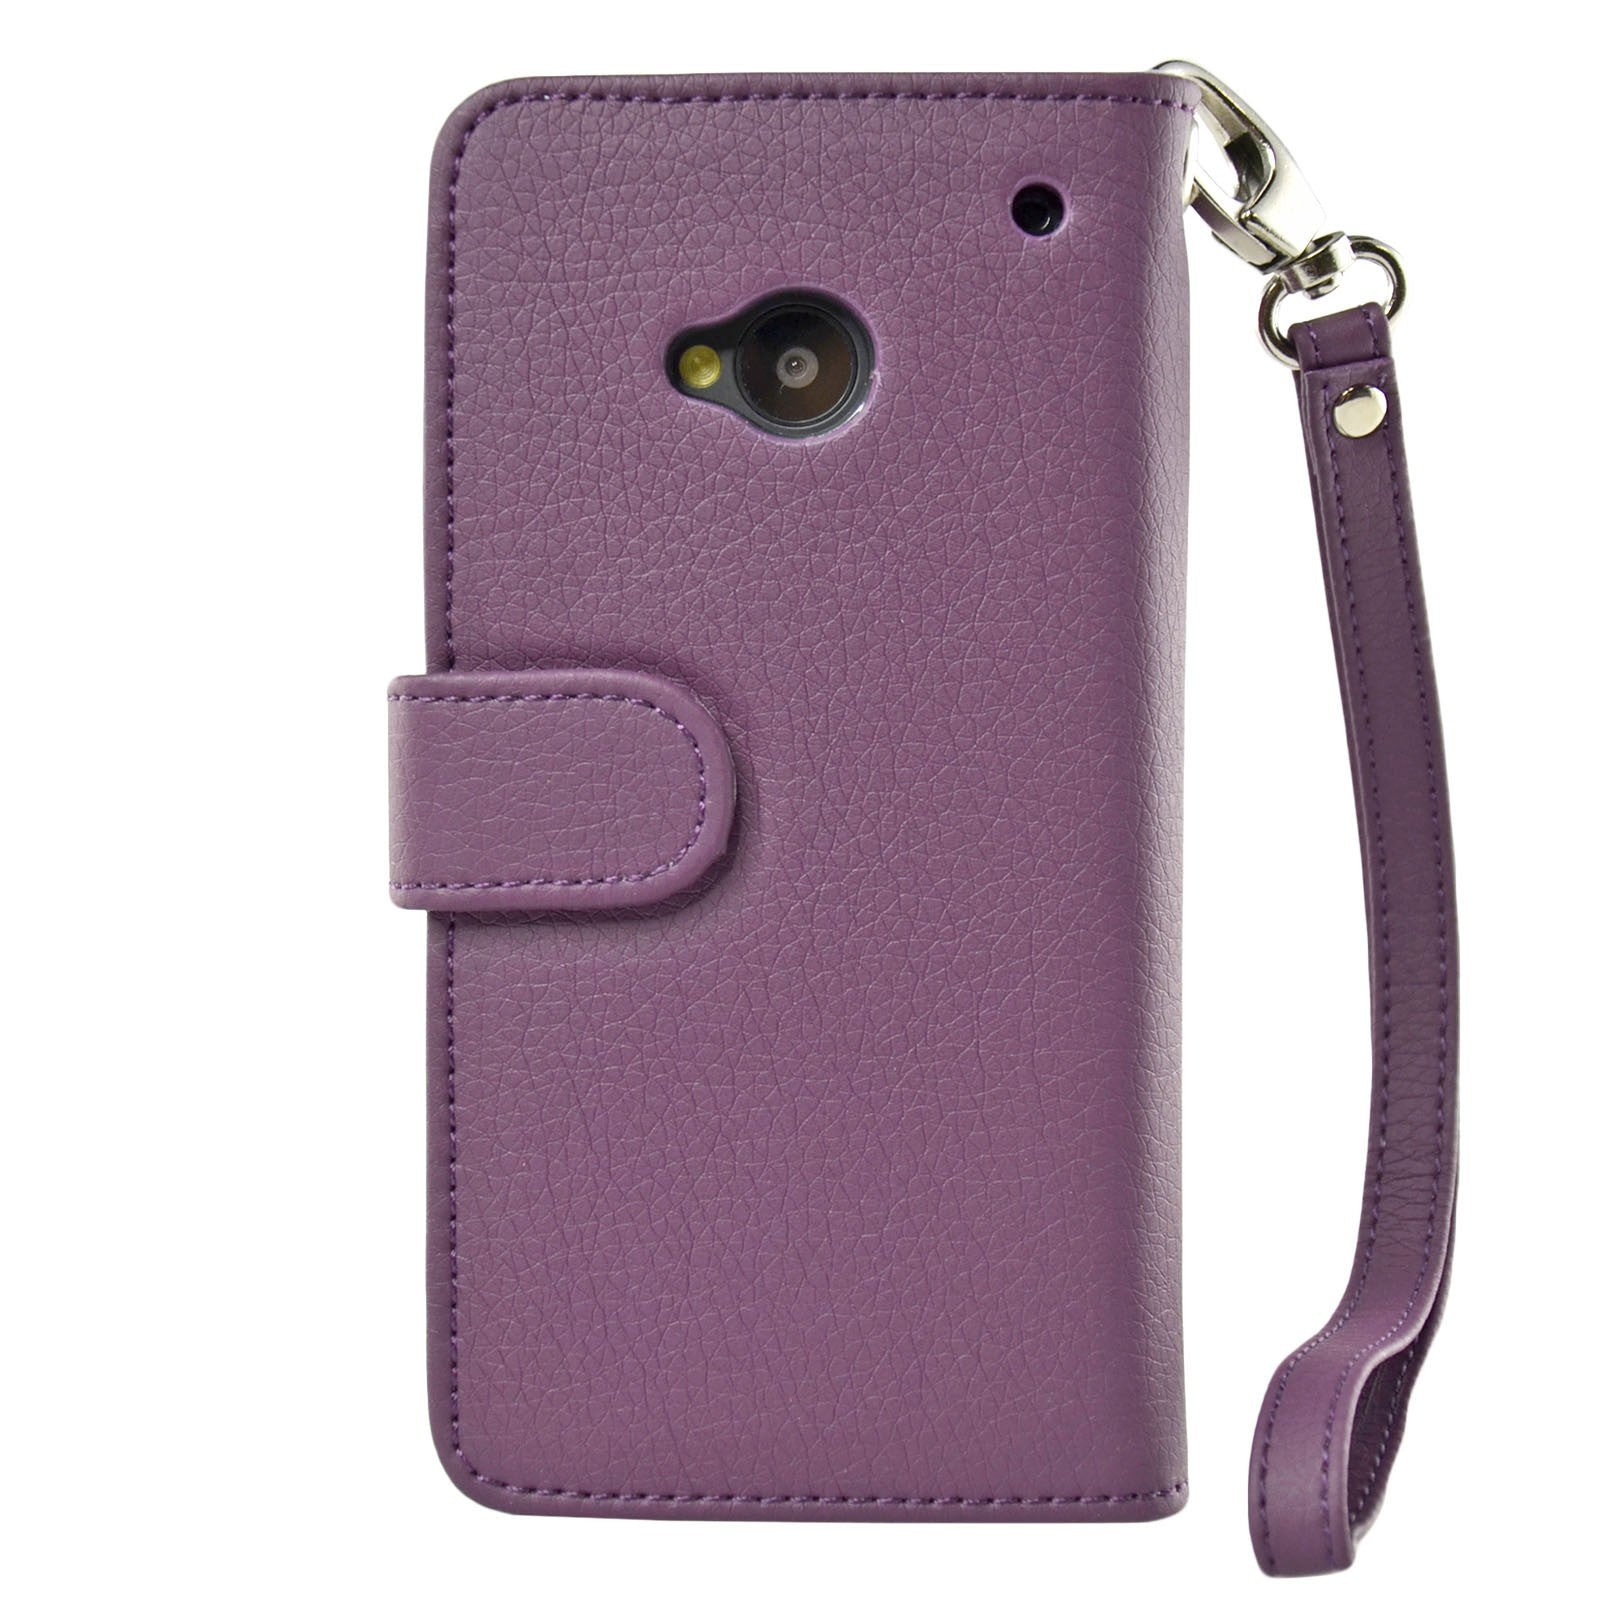 HTC One Wallet Case